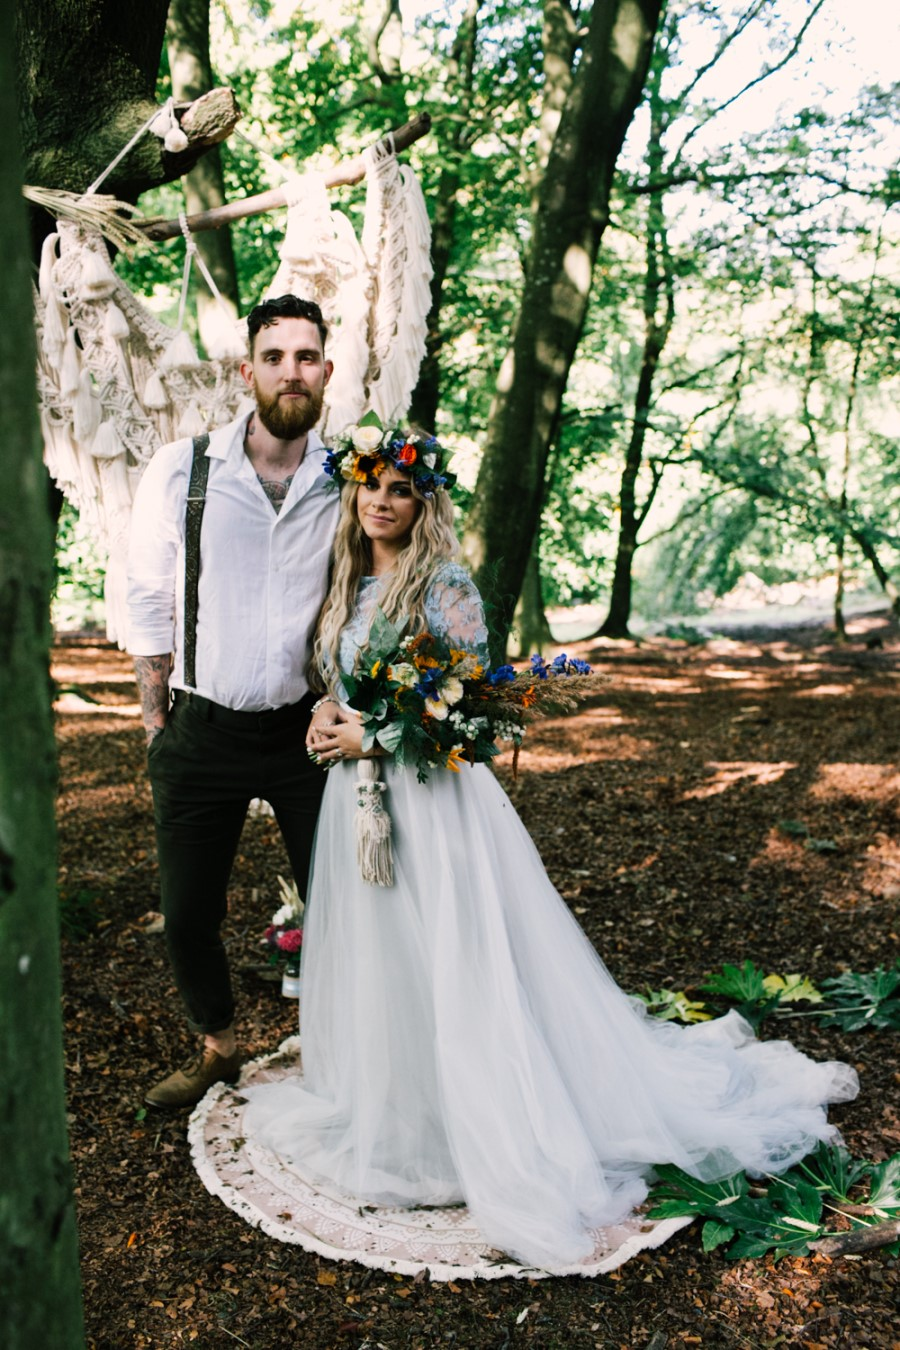 micro-wedding - forest elopement - small weddings - alternative wedding - outdoor wedding - covid wedding - bohemian couple